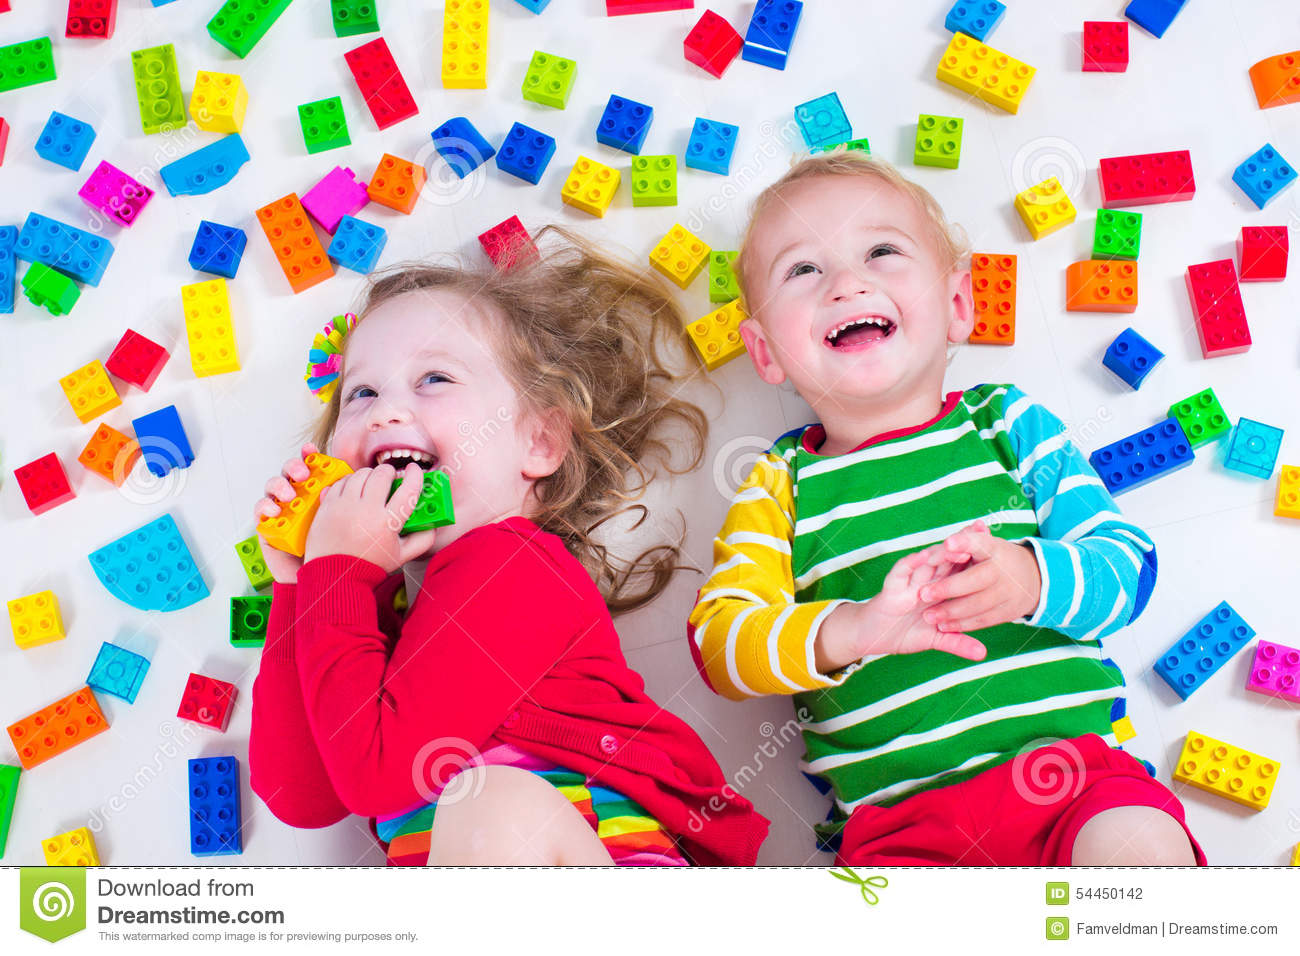 Kids Playing With Colorful Blocks Stock Photo - Image of creative ...